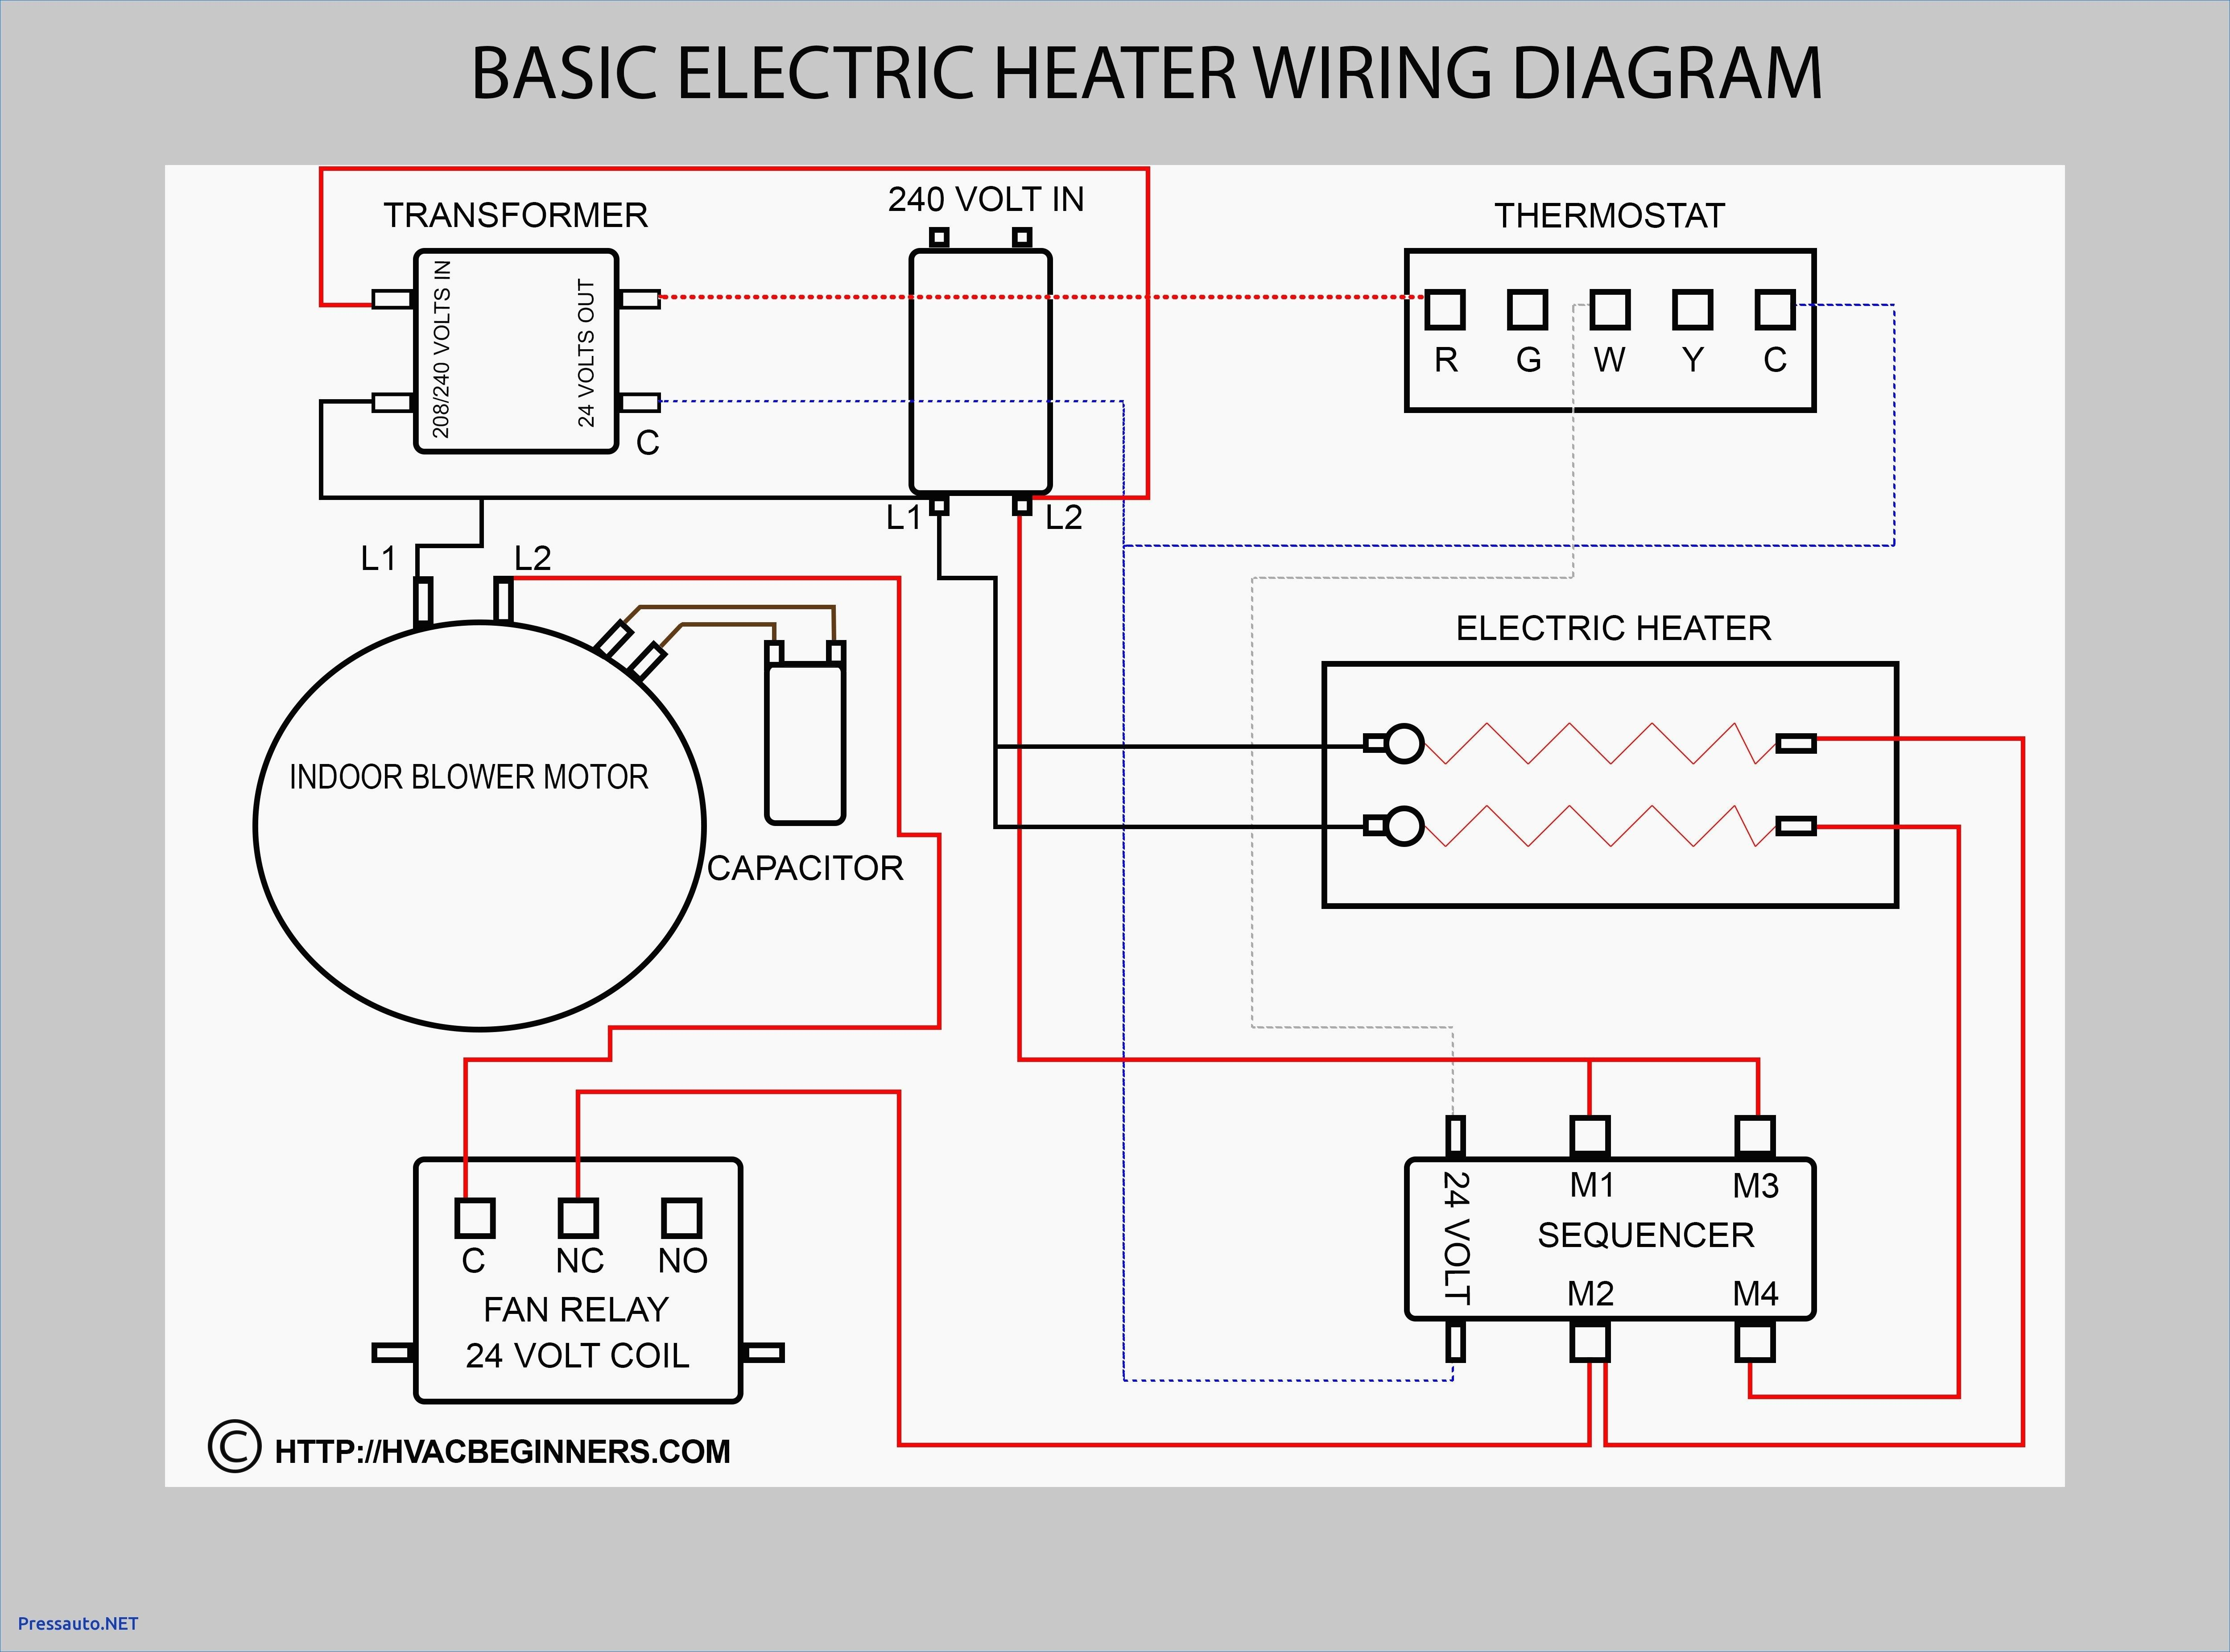 small resolution of electric furnace wiring diagram 240 volt wiring diagrams value electric furnace wiring diagram 240 volt